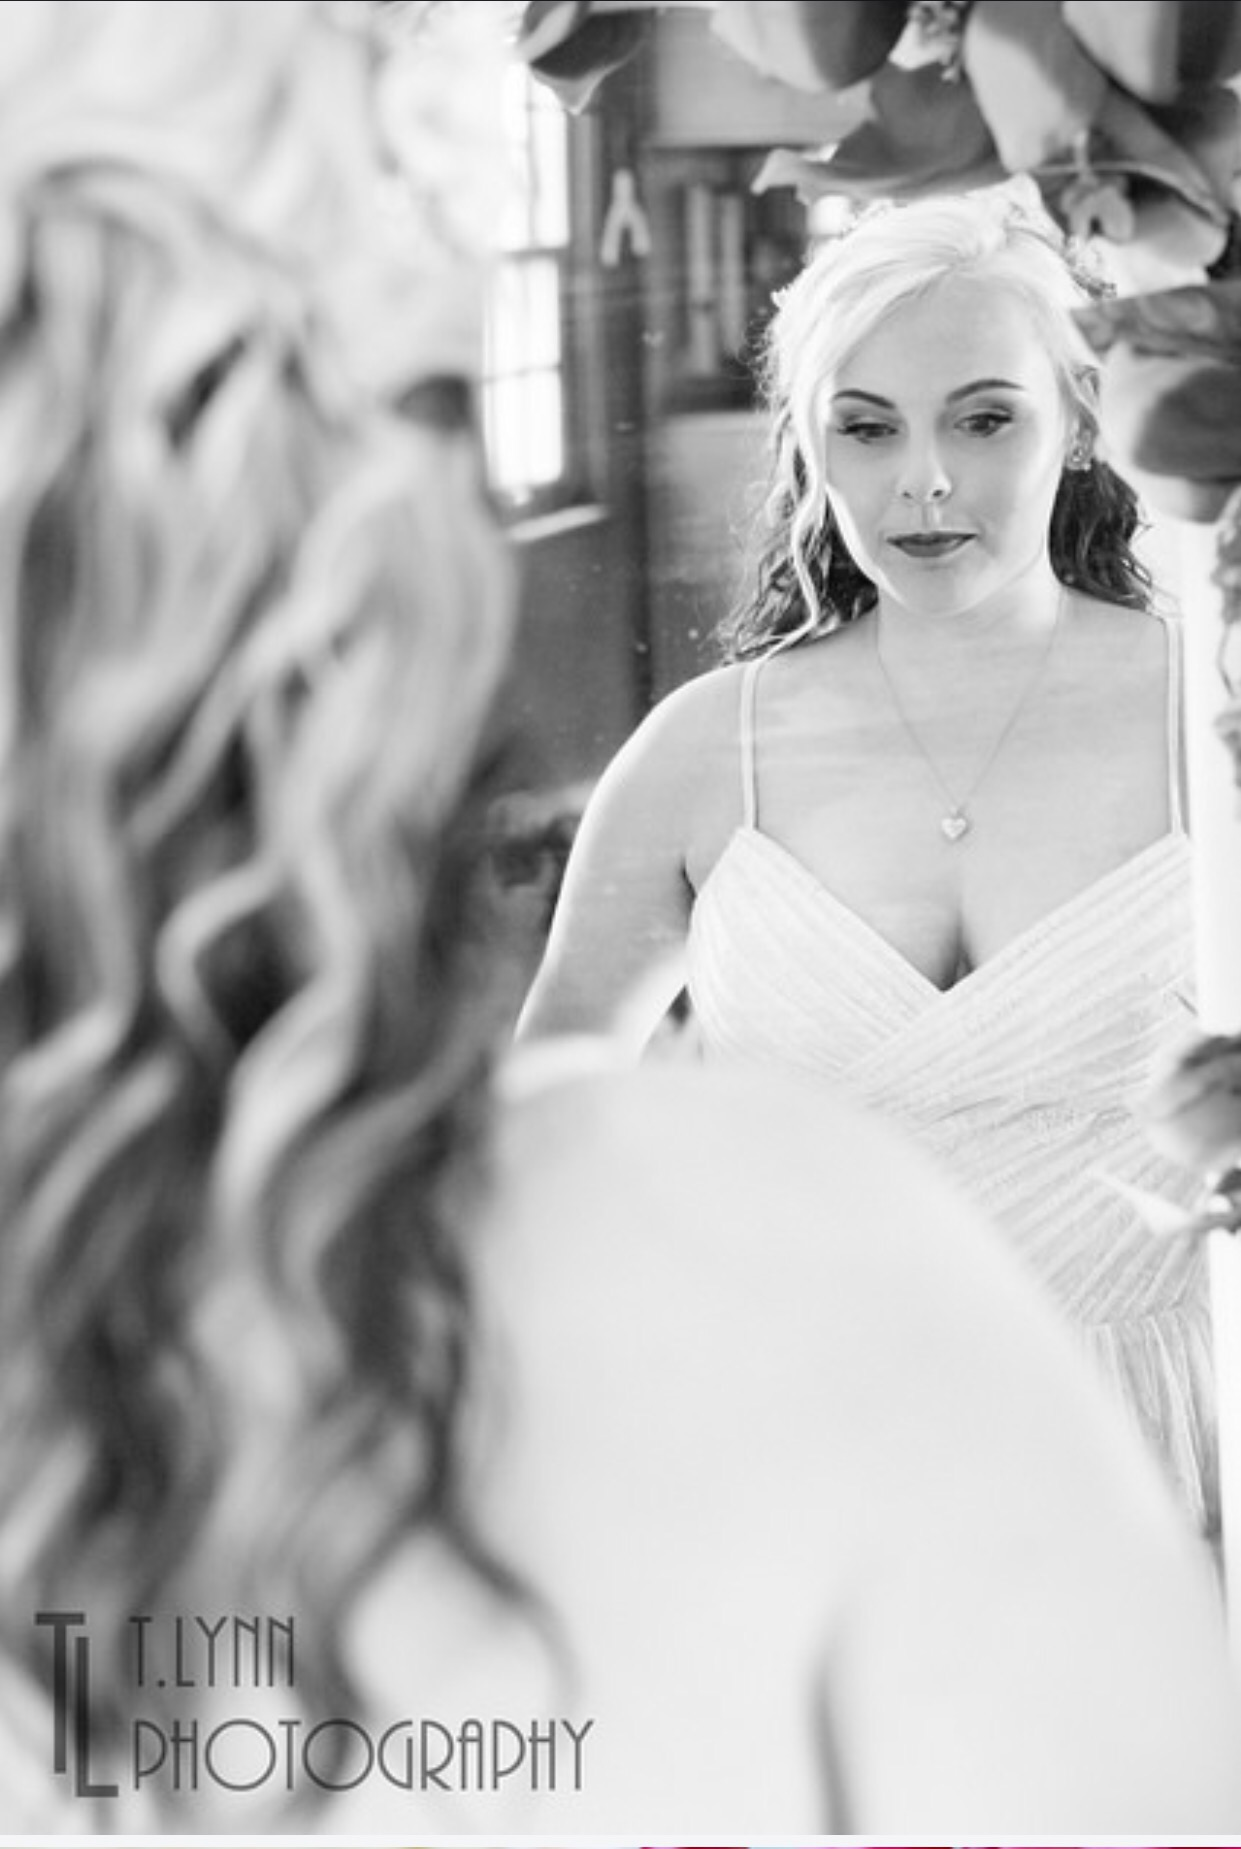 photo cred: Tlynn Photography www.tylynnphotograph.com